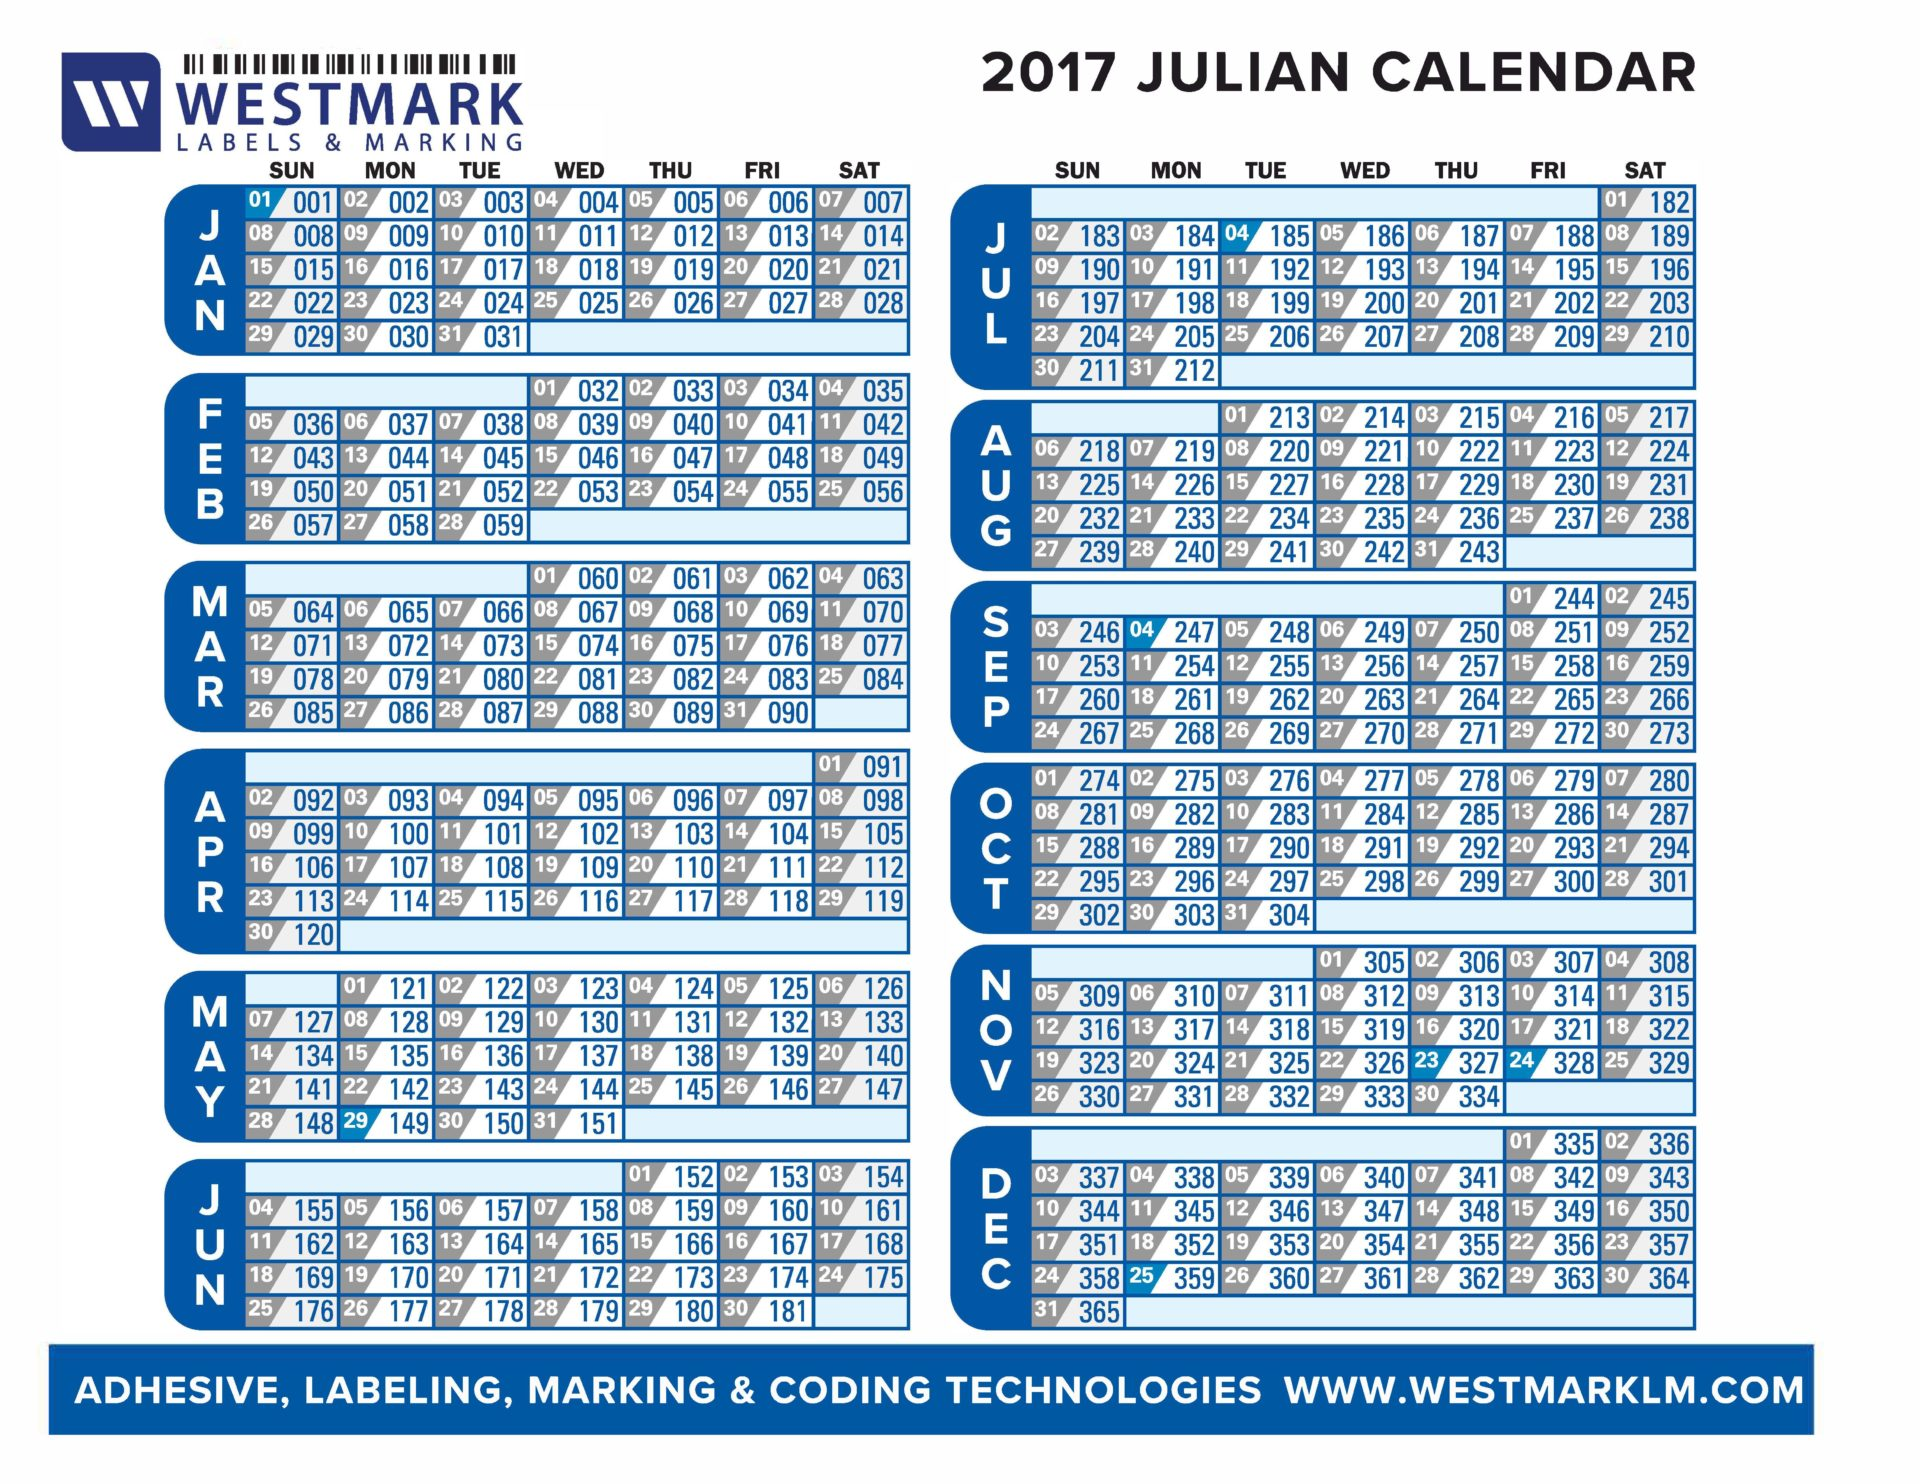 Julian Calendar 2017 Westmark Labels Marking